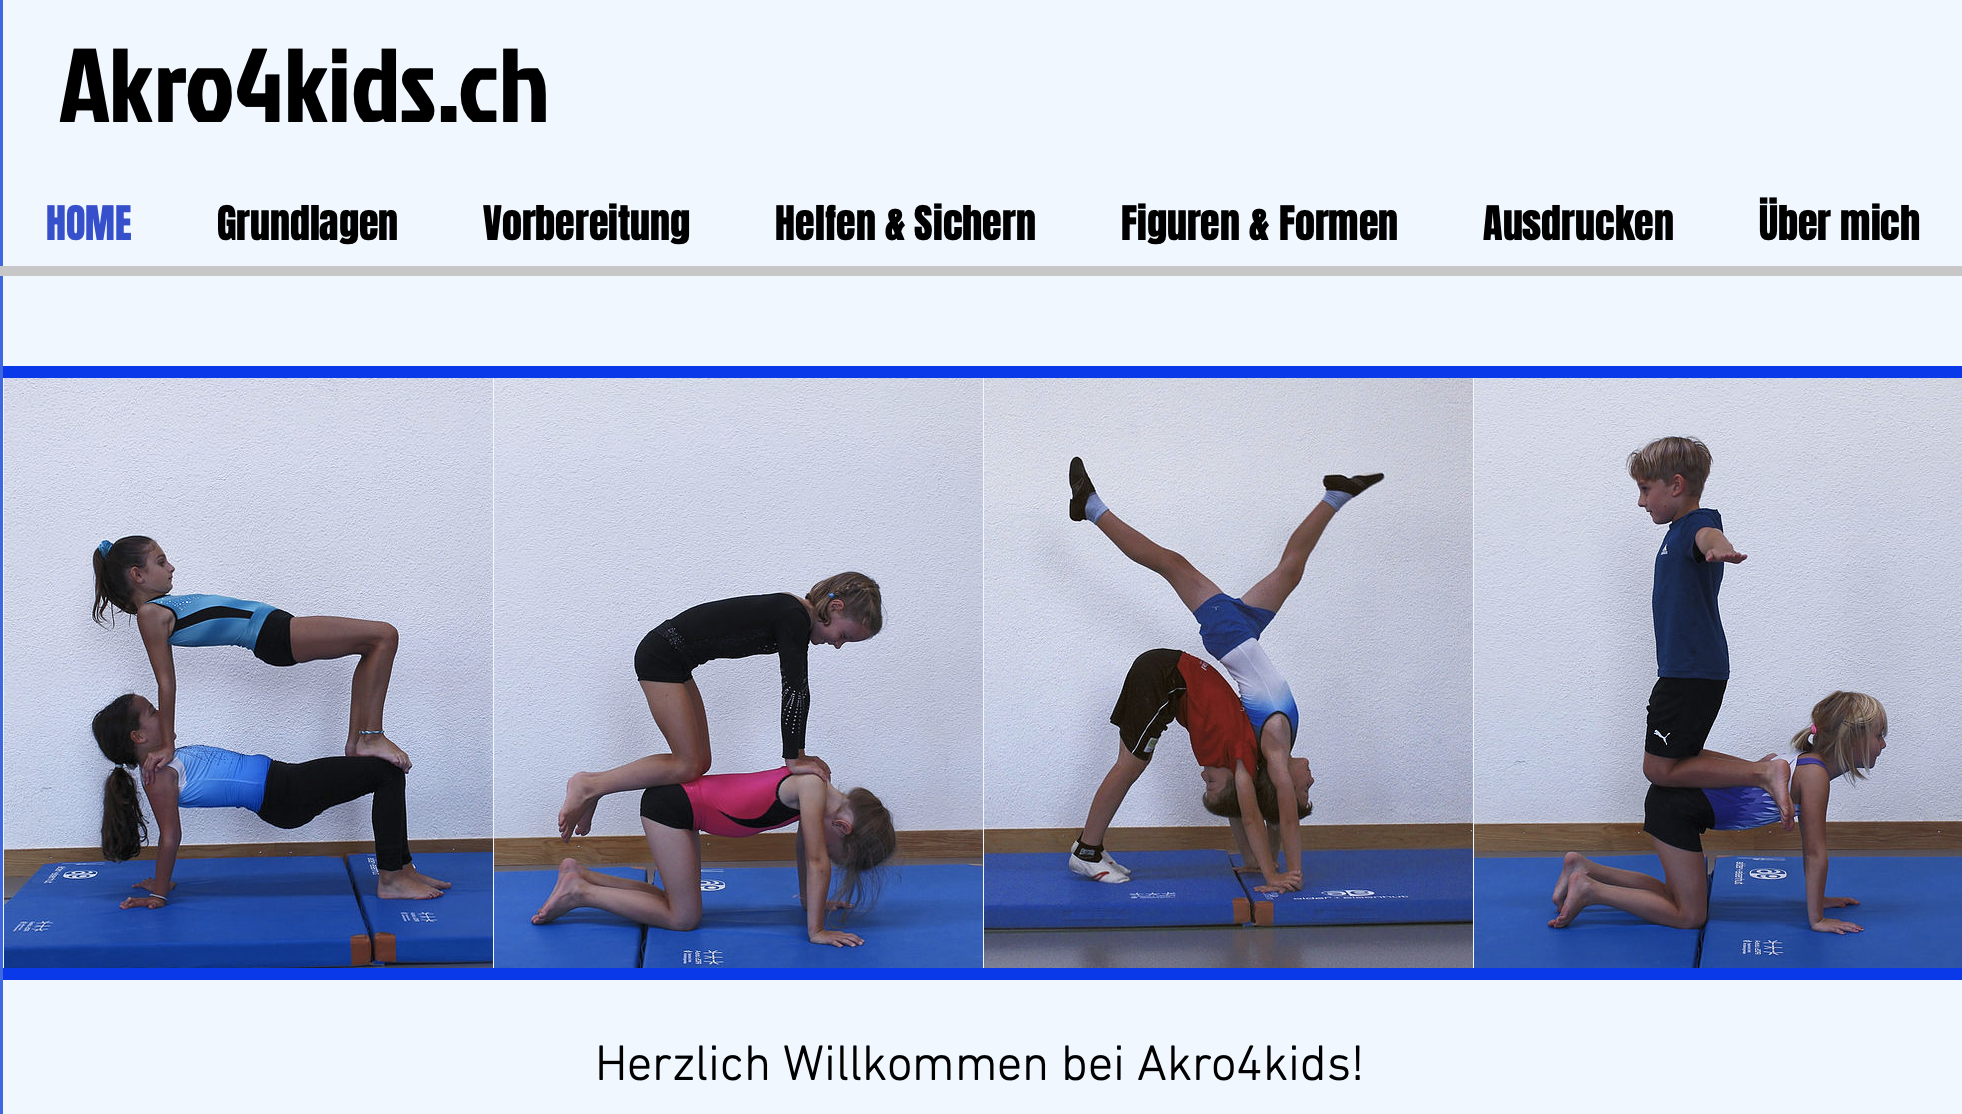 Preview image for LOM object Akro4kids.ch